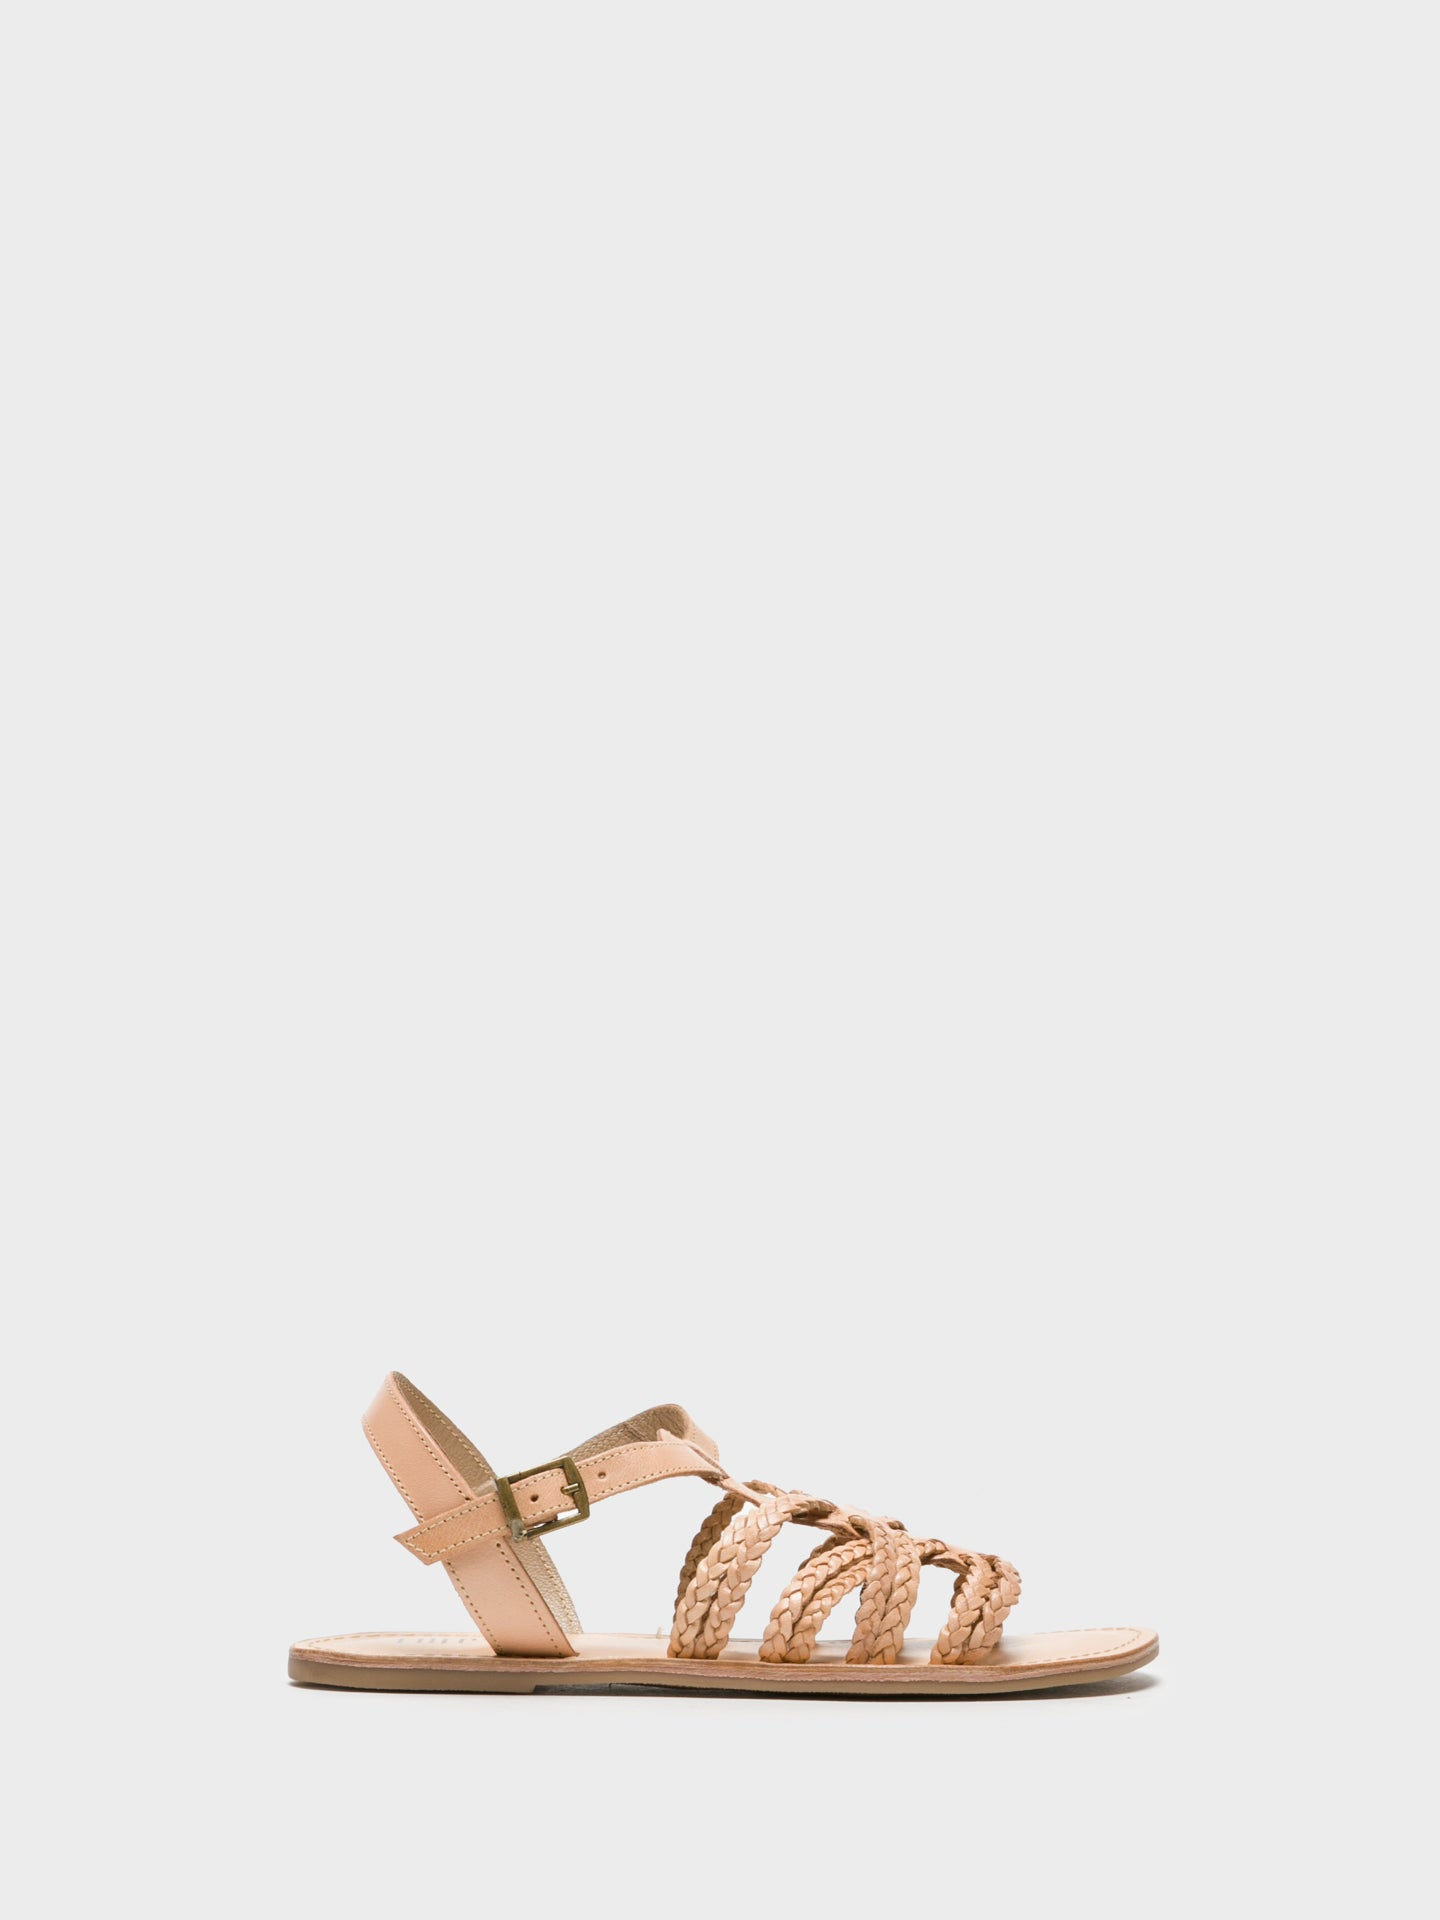 Foreva BlanchedAlmond	 Strappy Sandals